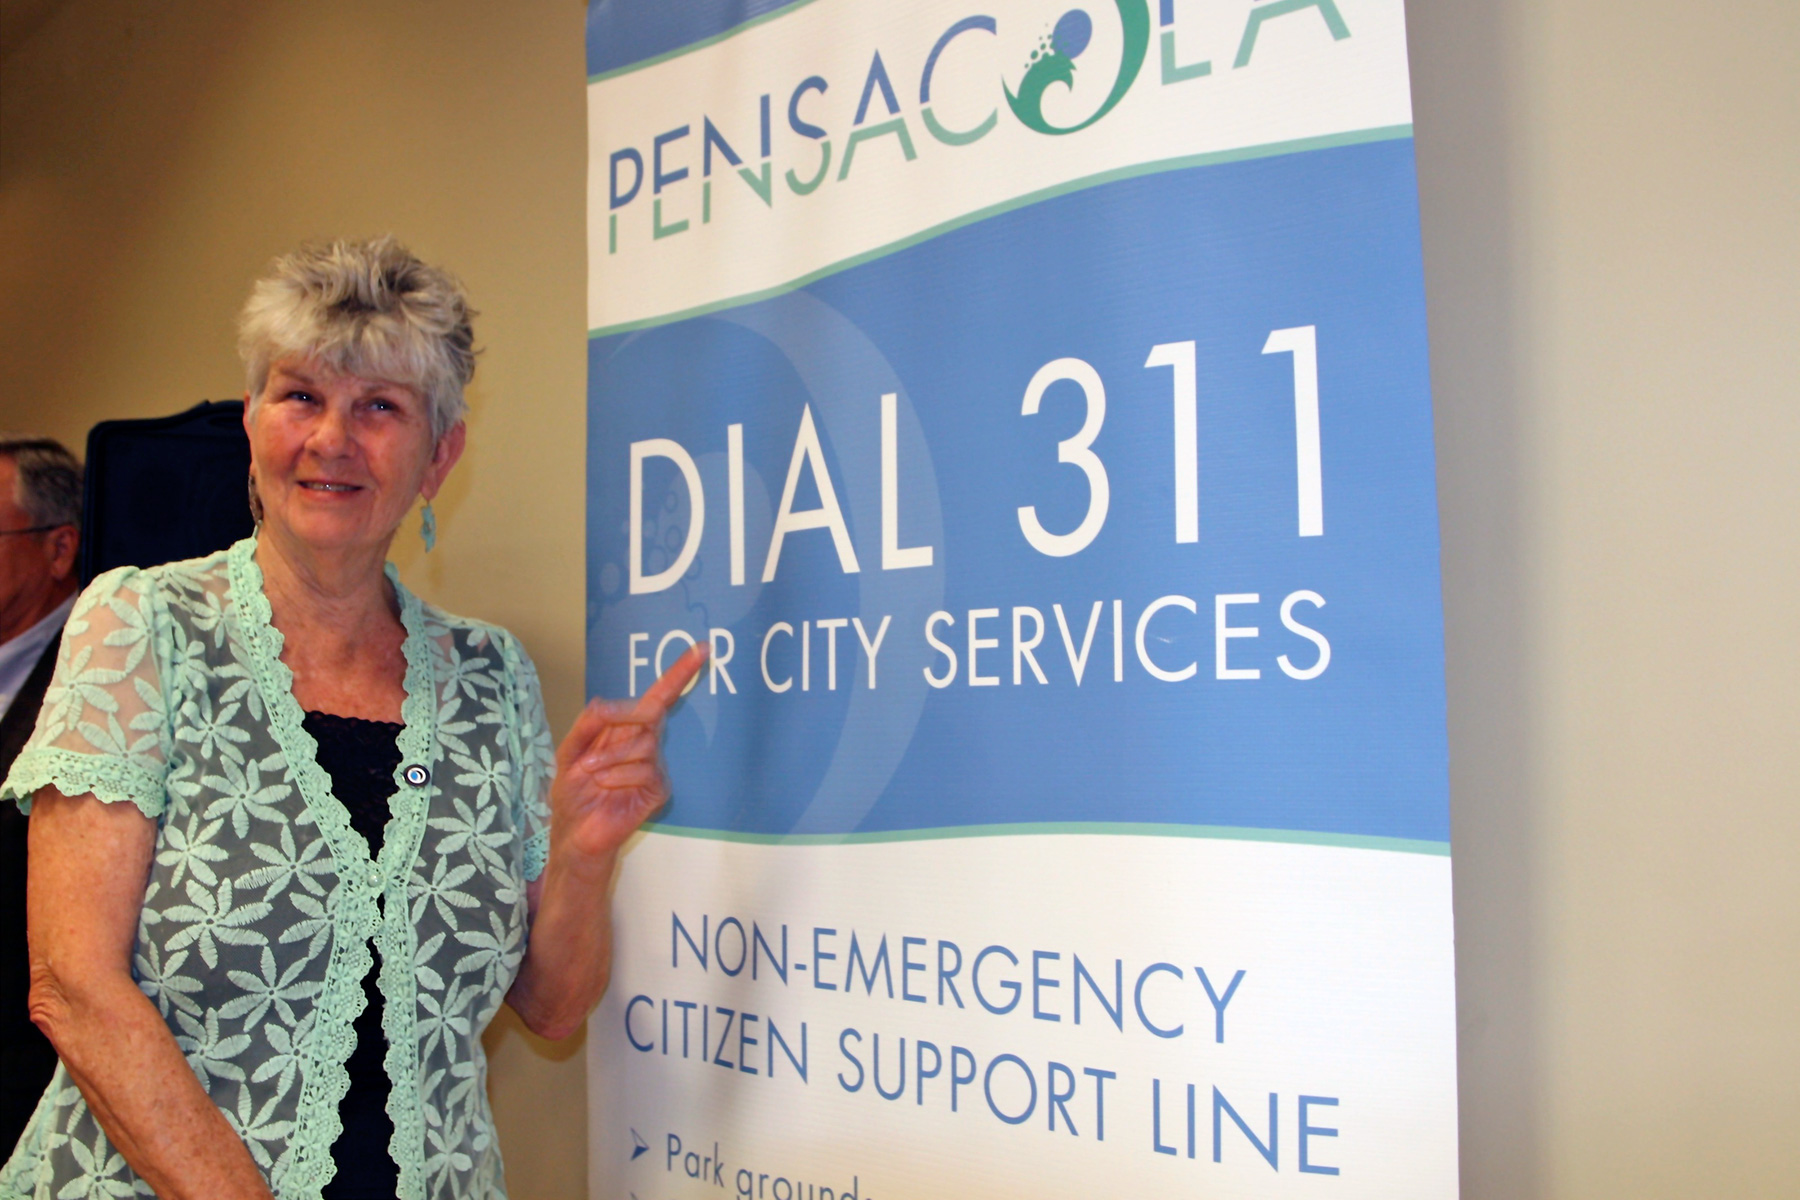 Councilwoman Myers promoting the Pensacola 311 service